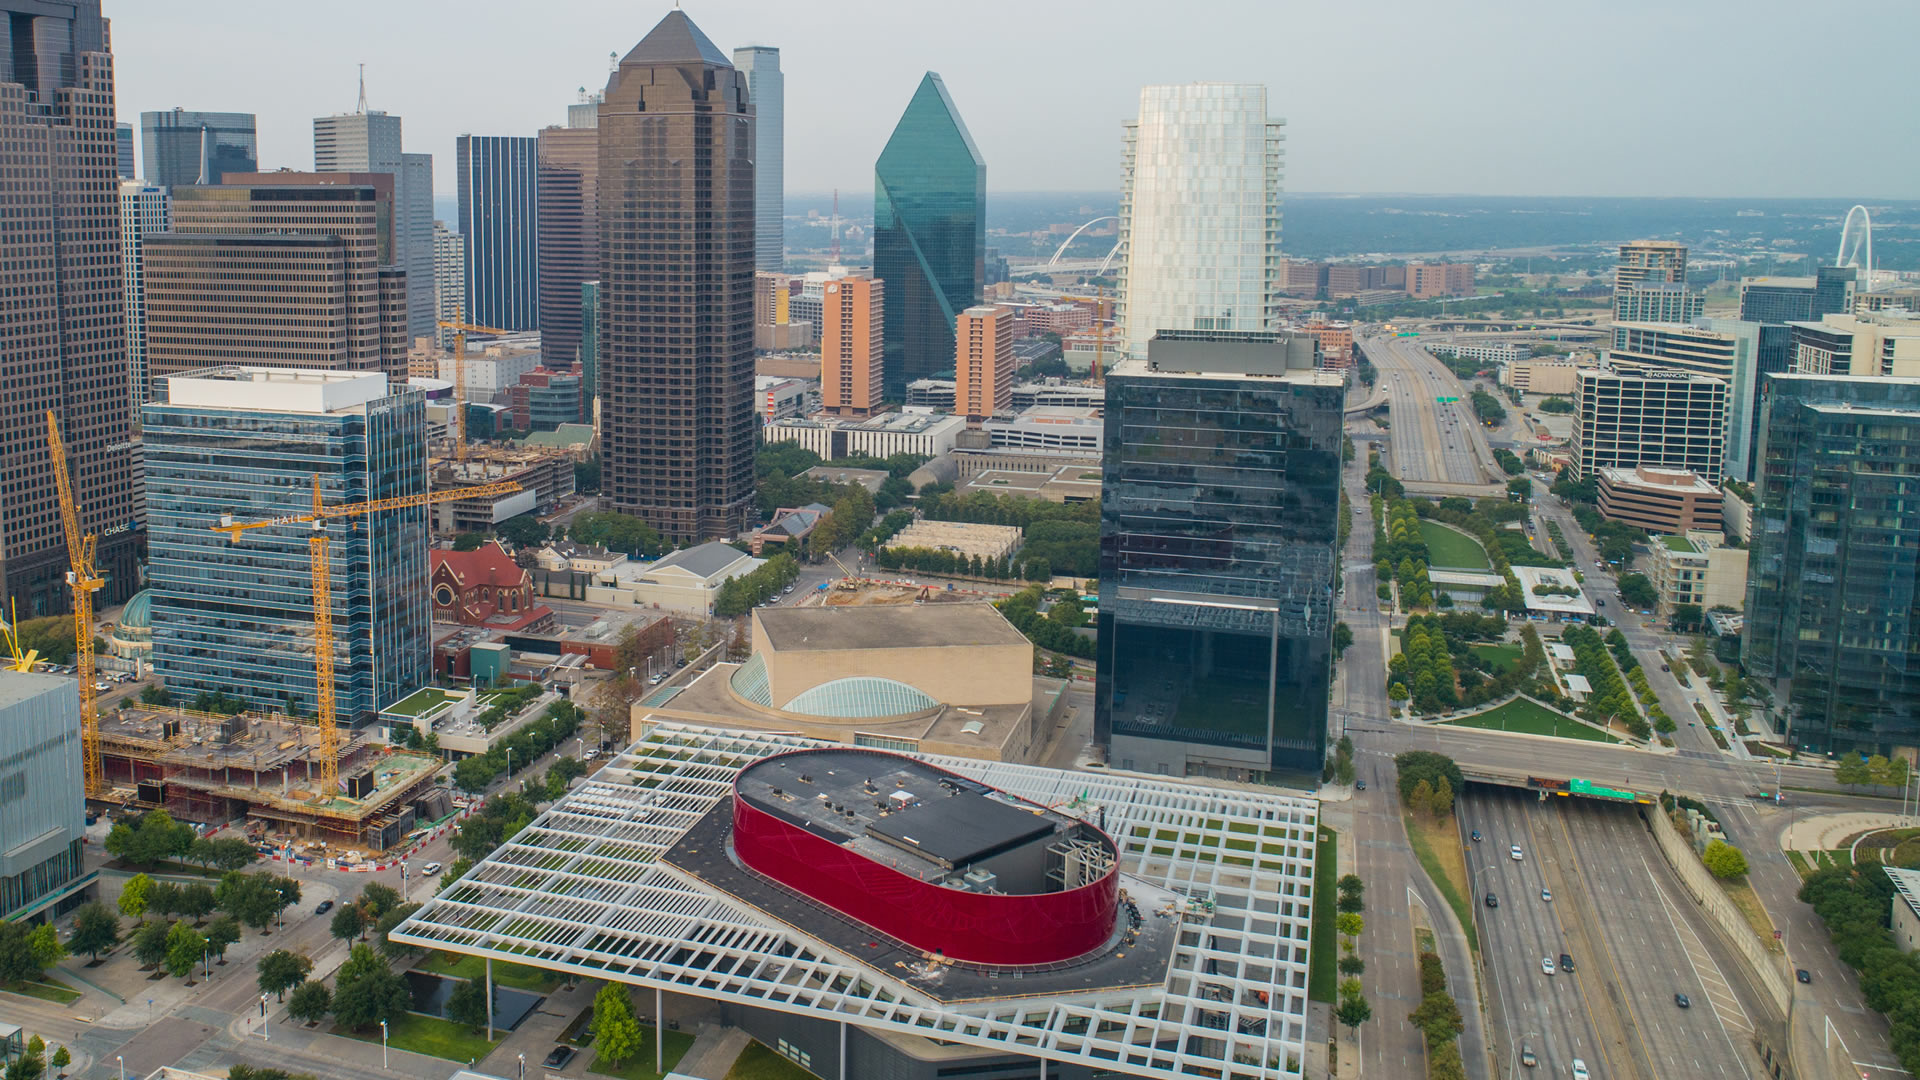 Dallas Arts District is considered as the largest urban entertainment complex in the nation.